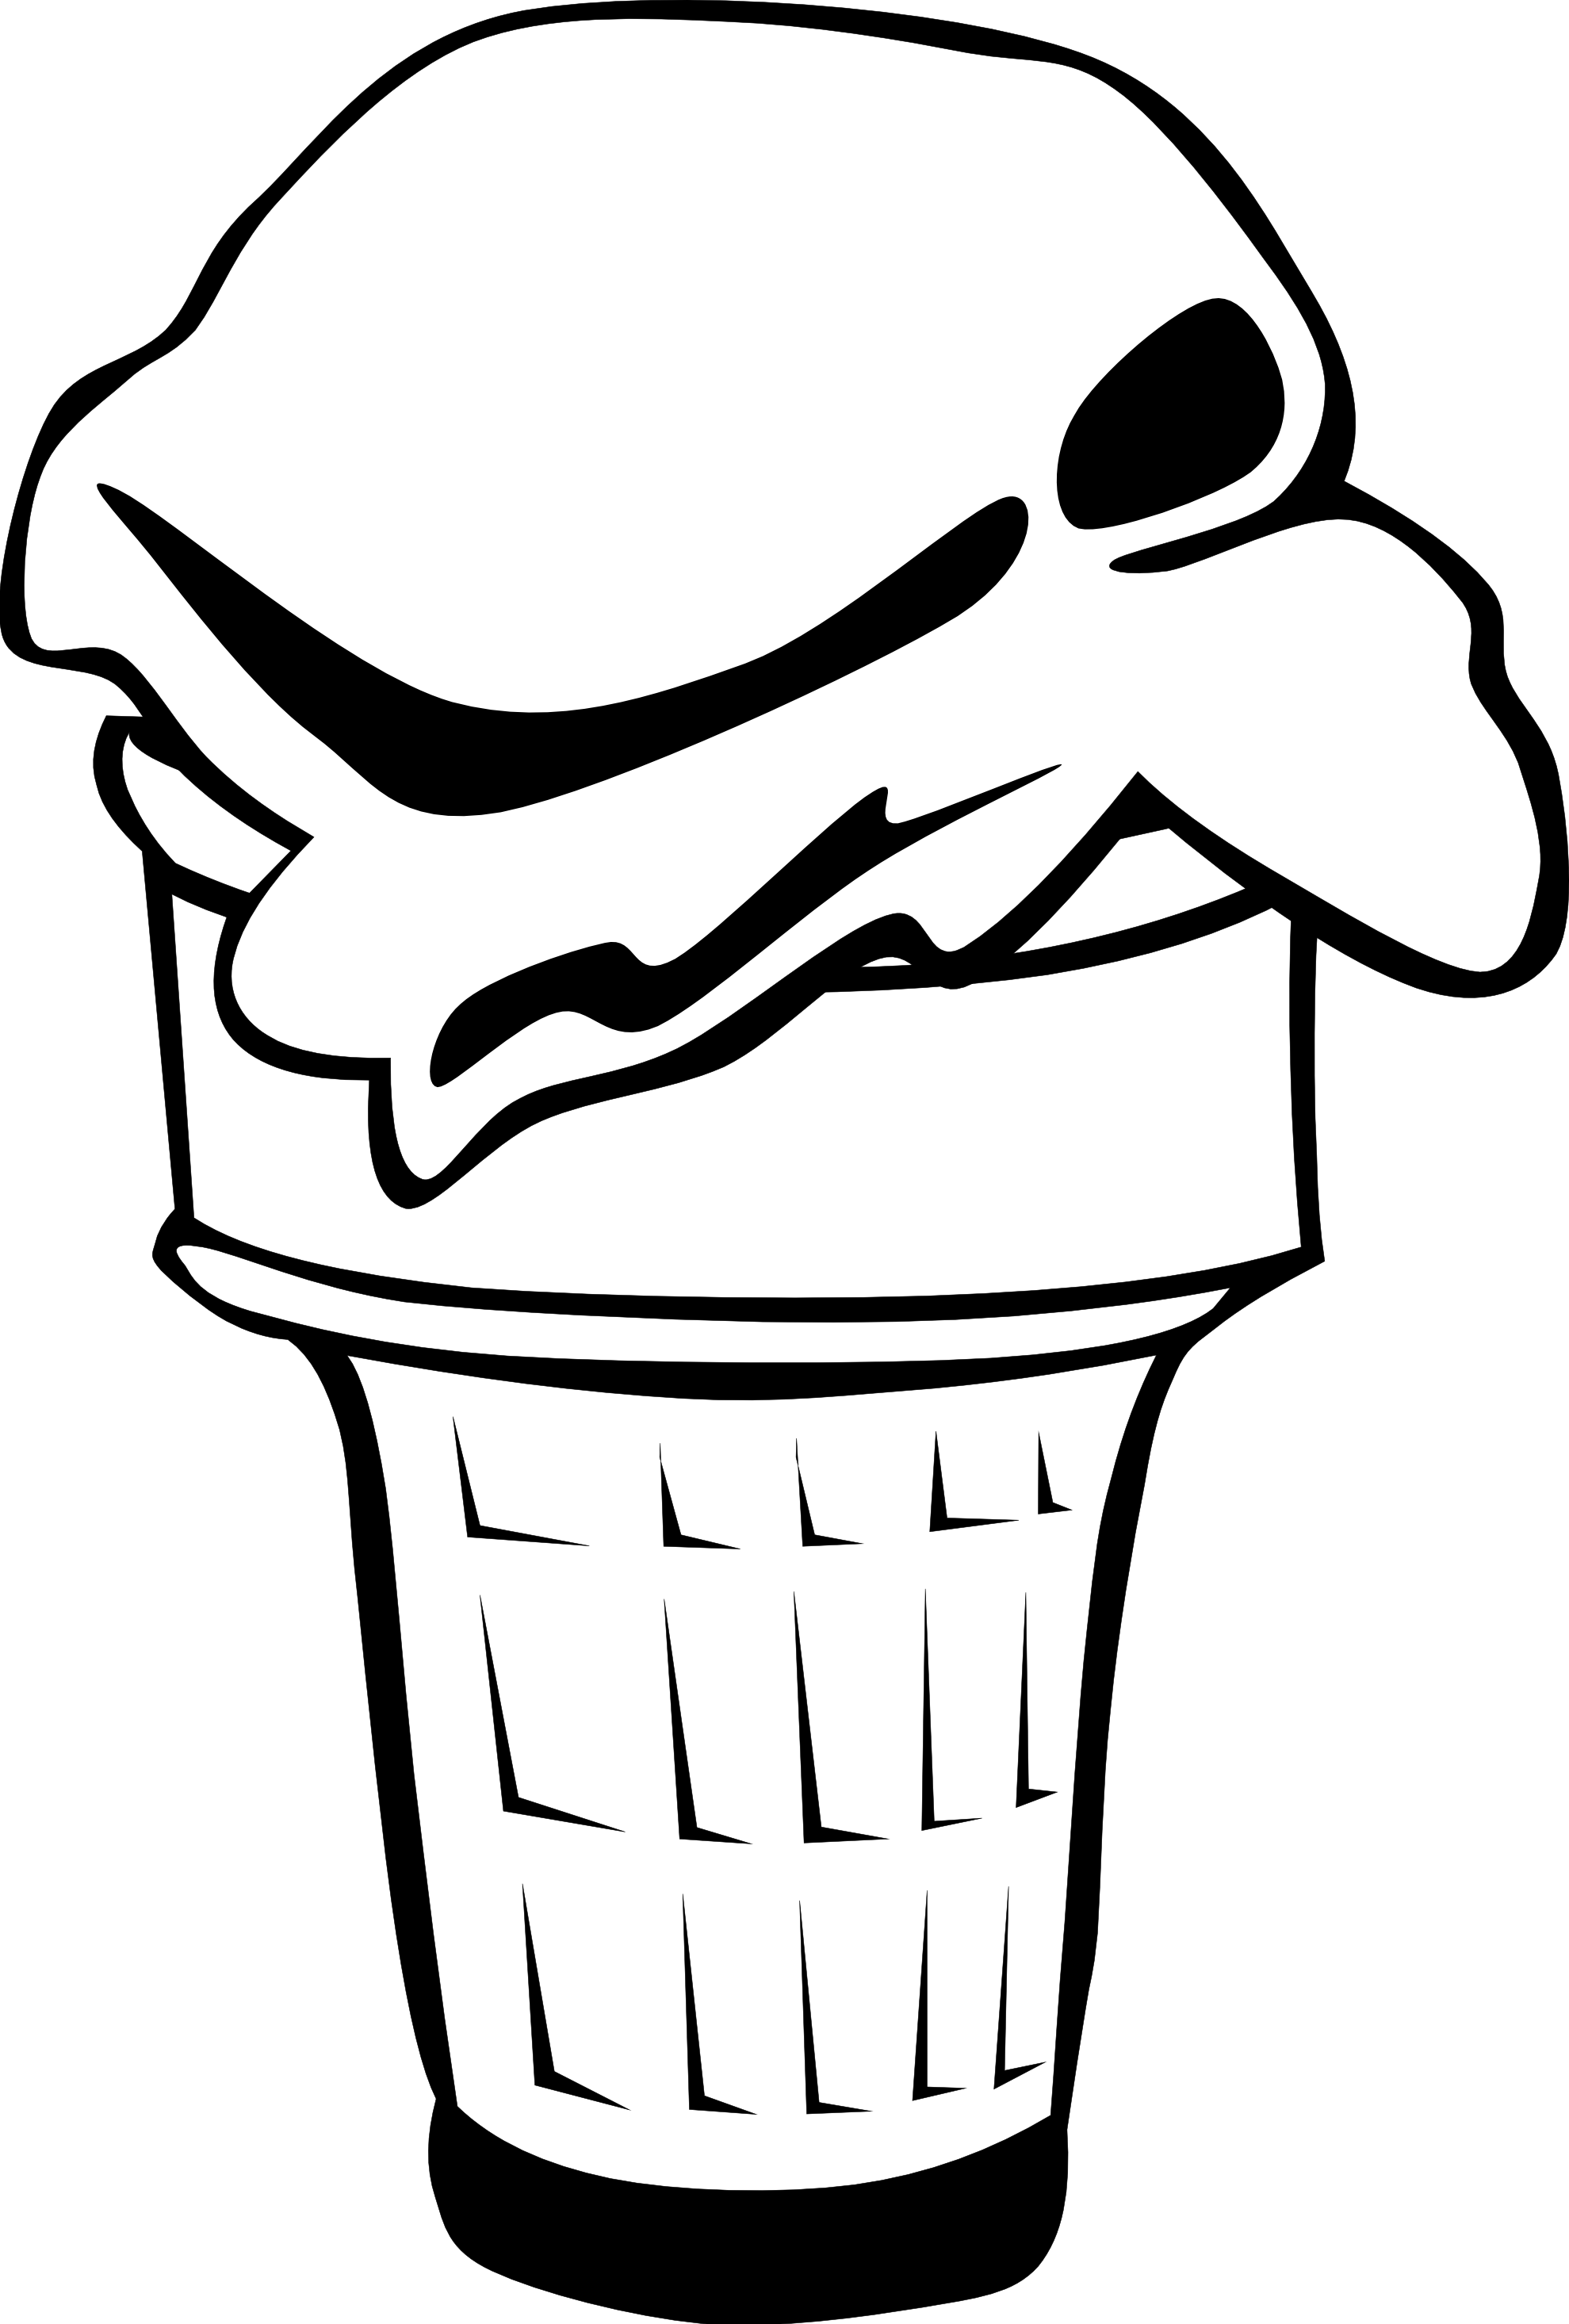 Thanksgiving food clipart black and white freeuse Ice Cream Line Drawing at GetDrawings.com | Free for personal use ... freeuse